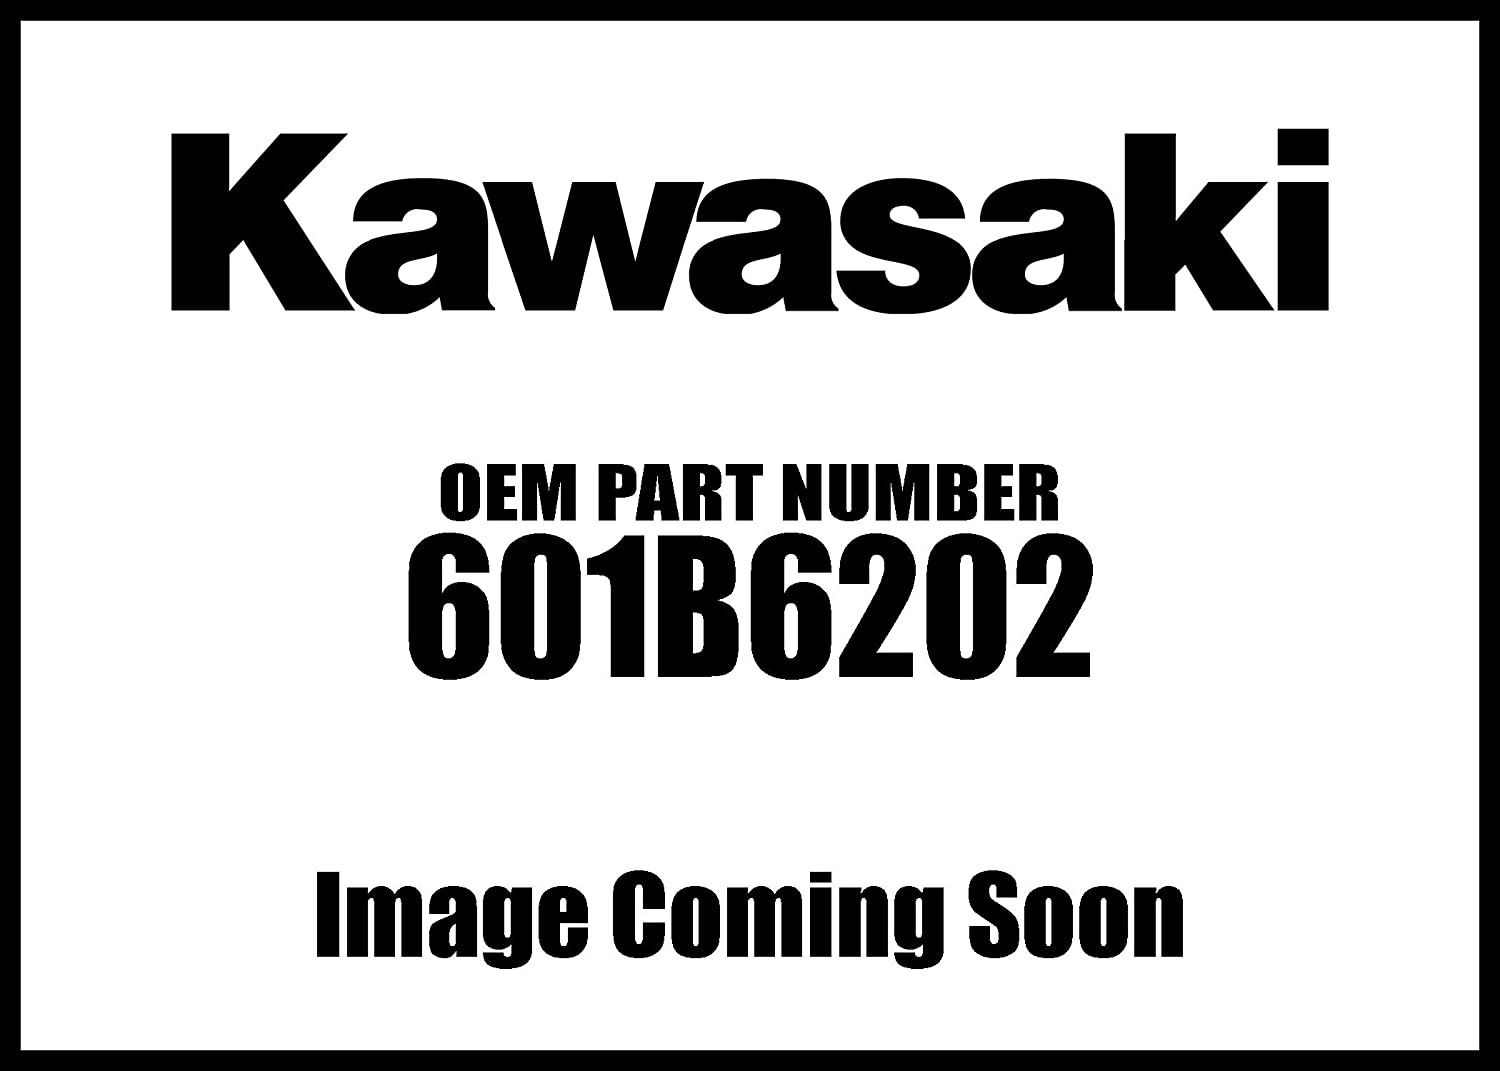 Kawasaki 1965-2018 250 Csr Belt Mule Sx Bearing Ball #6202 601B6202 New Oem